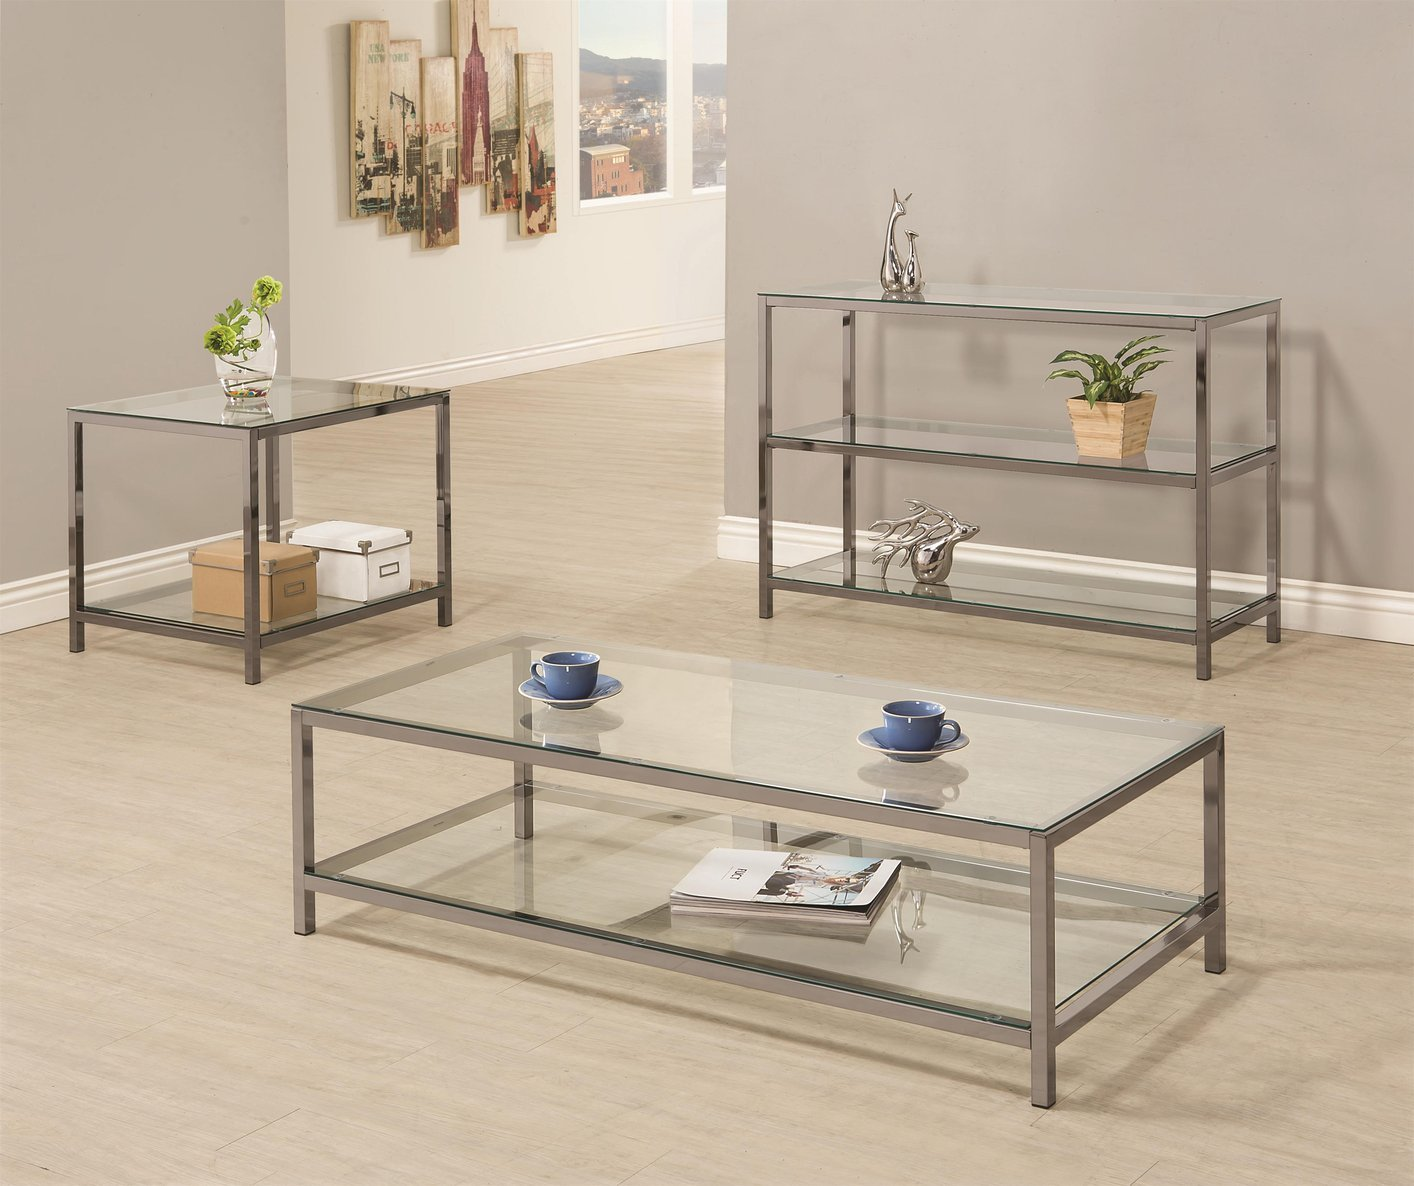 Glass Sofa Table black glass sofa table - steal-a-sofa furniture outlet los angeles ca